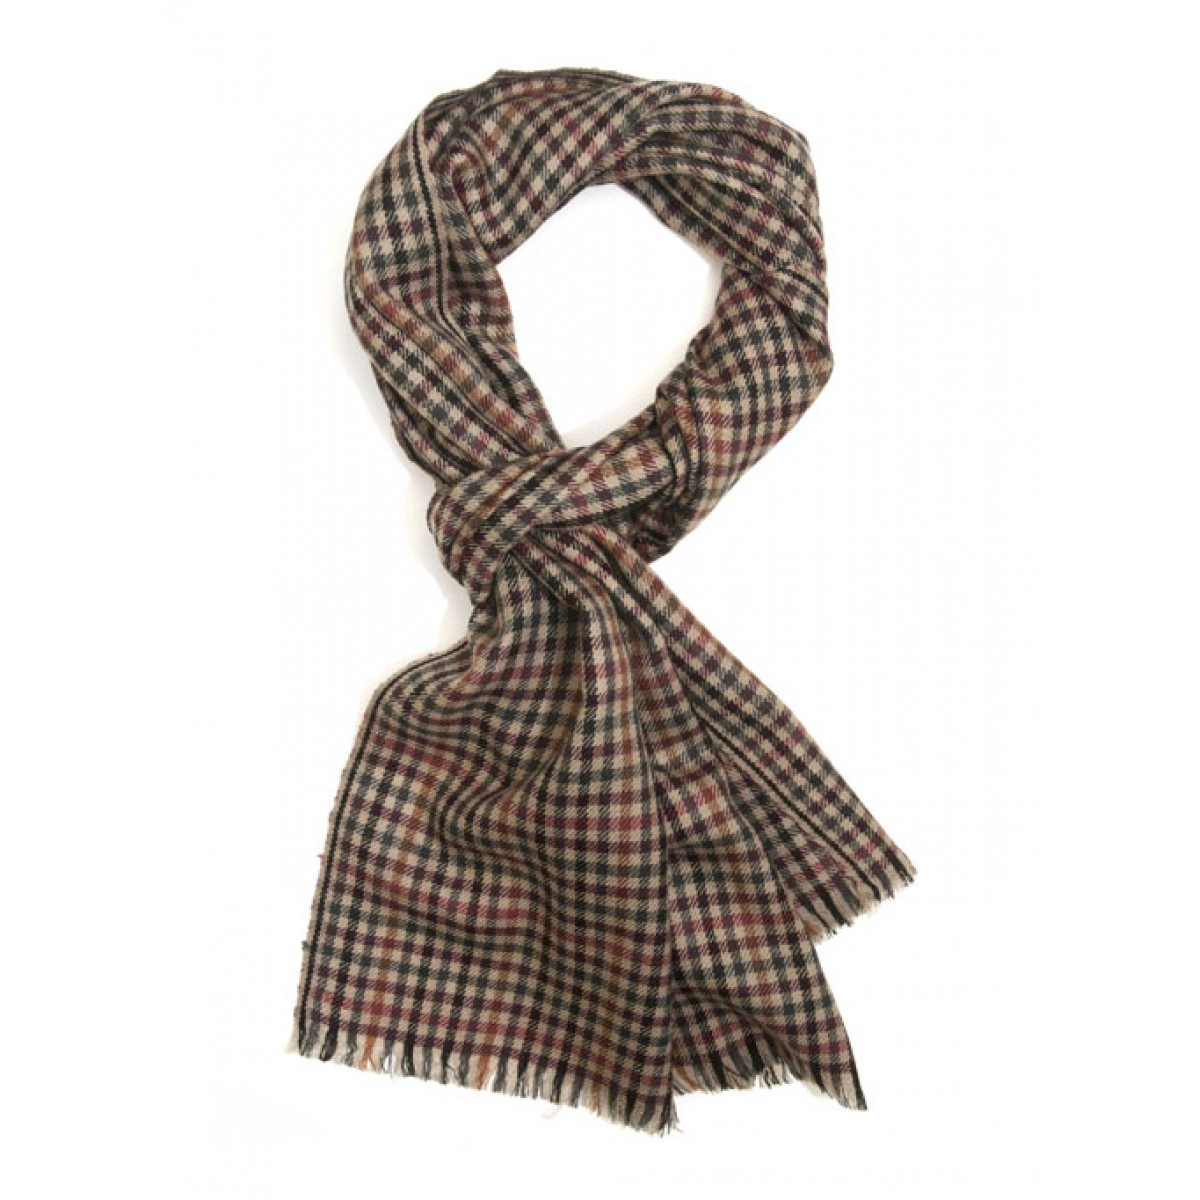 Parc City Boot Co. - Micro Wool Scarf in Tan Gun Check